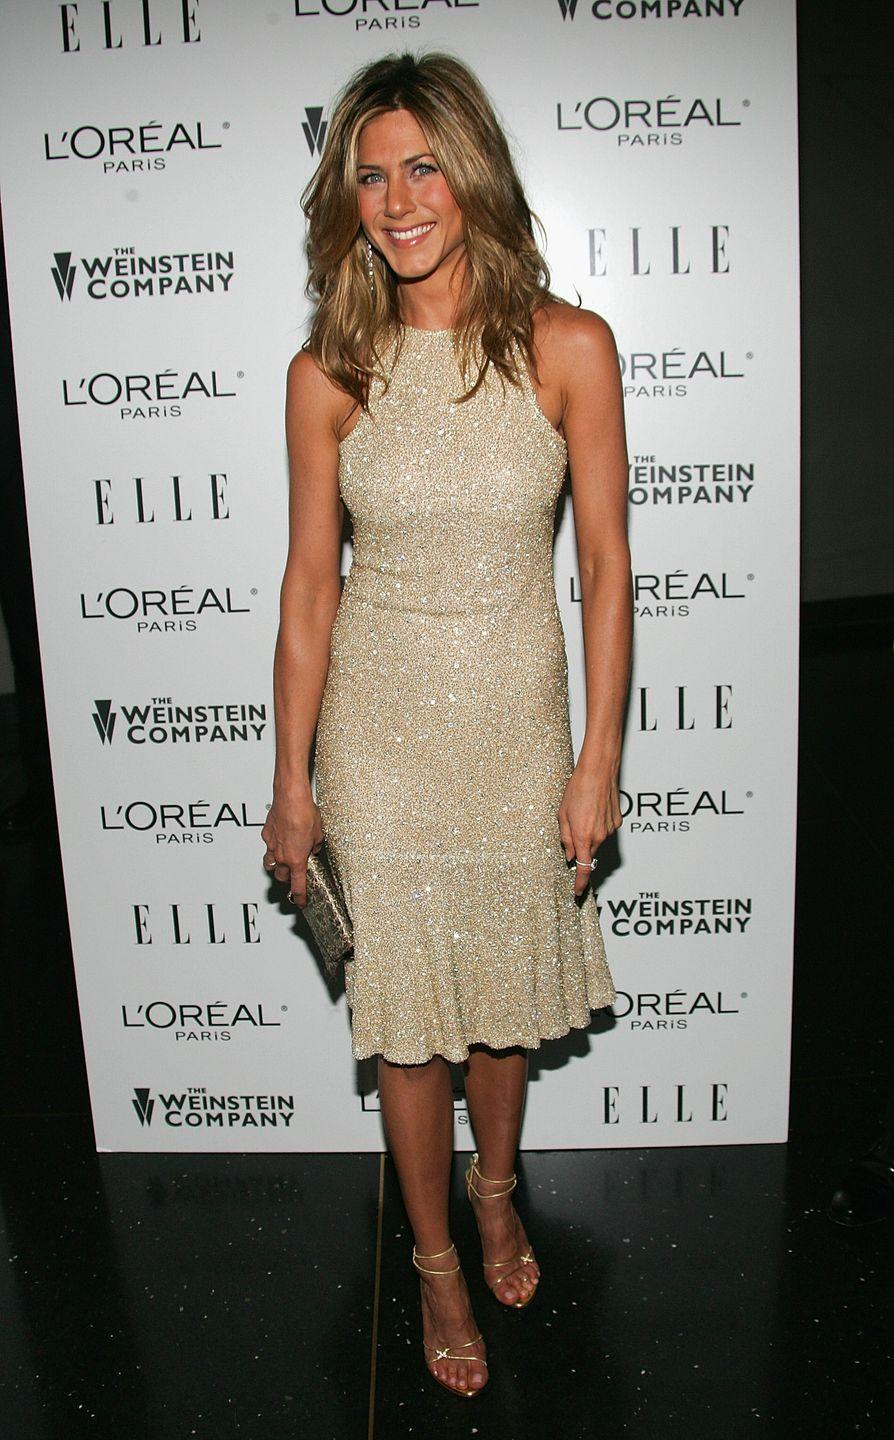 <p>Jen showed up to the 2005 premiere of <em>Derailed</em> in this high-neck, sparkly number. The fit shows off her muscular form and that hairstyle is flawless.<br></p>